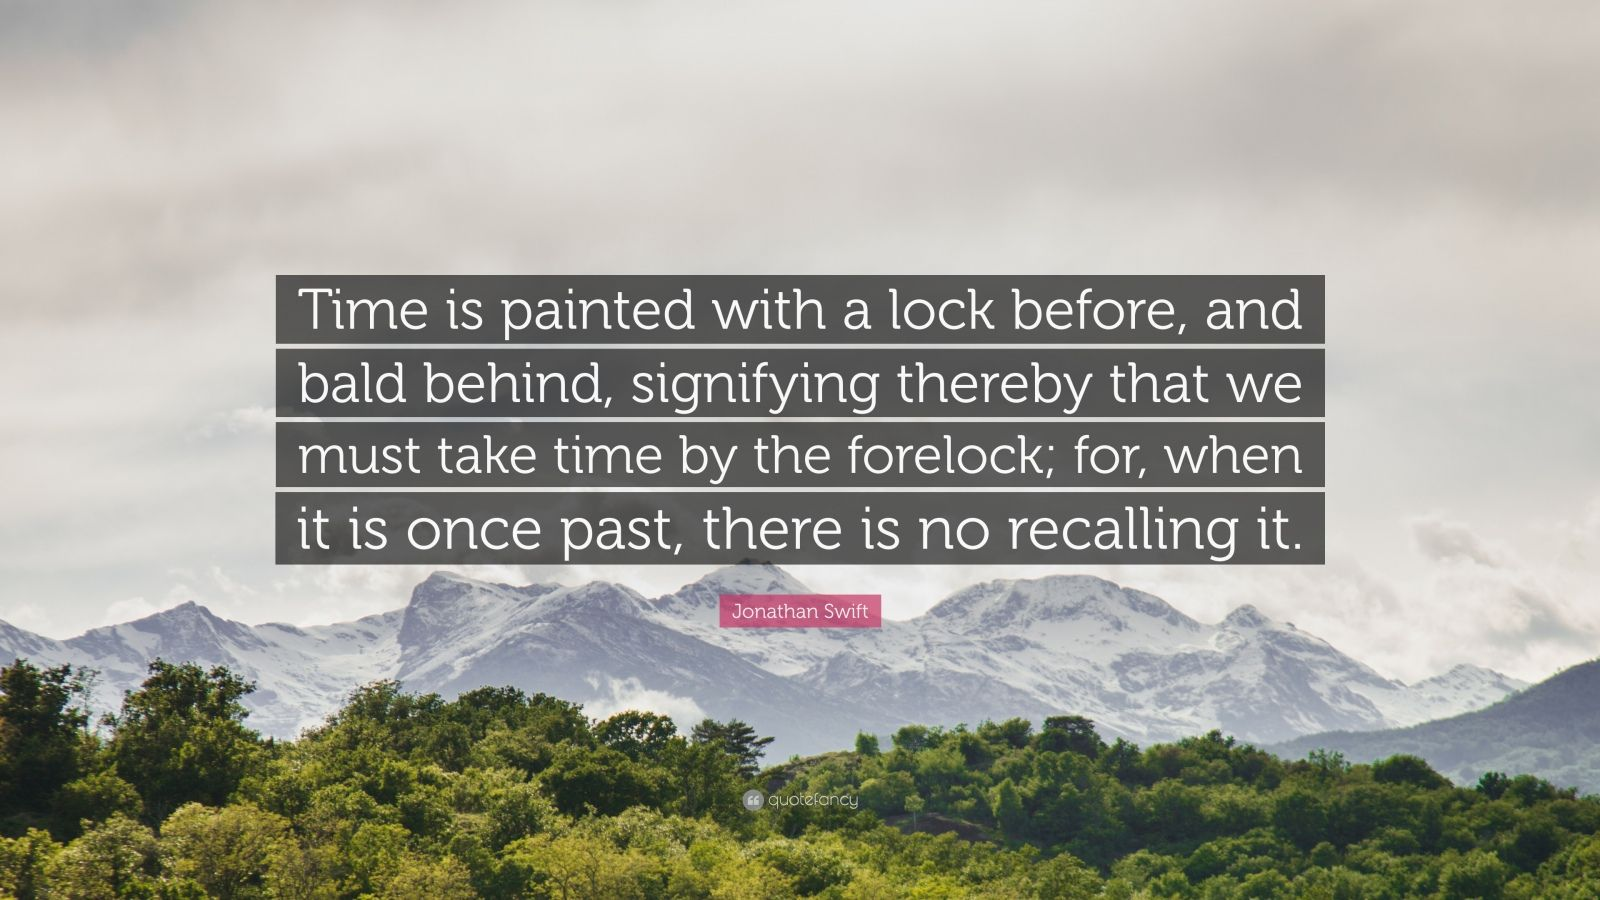 """Jonathan Swift Quote: """"Time is painted with a lock before, and bald behind, signifying thereby that we must take time by the forelock; for, when it is once past, there is no recalling it."""""""